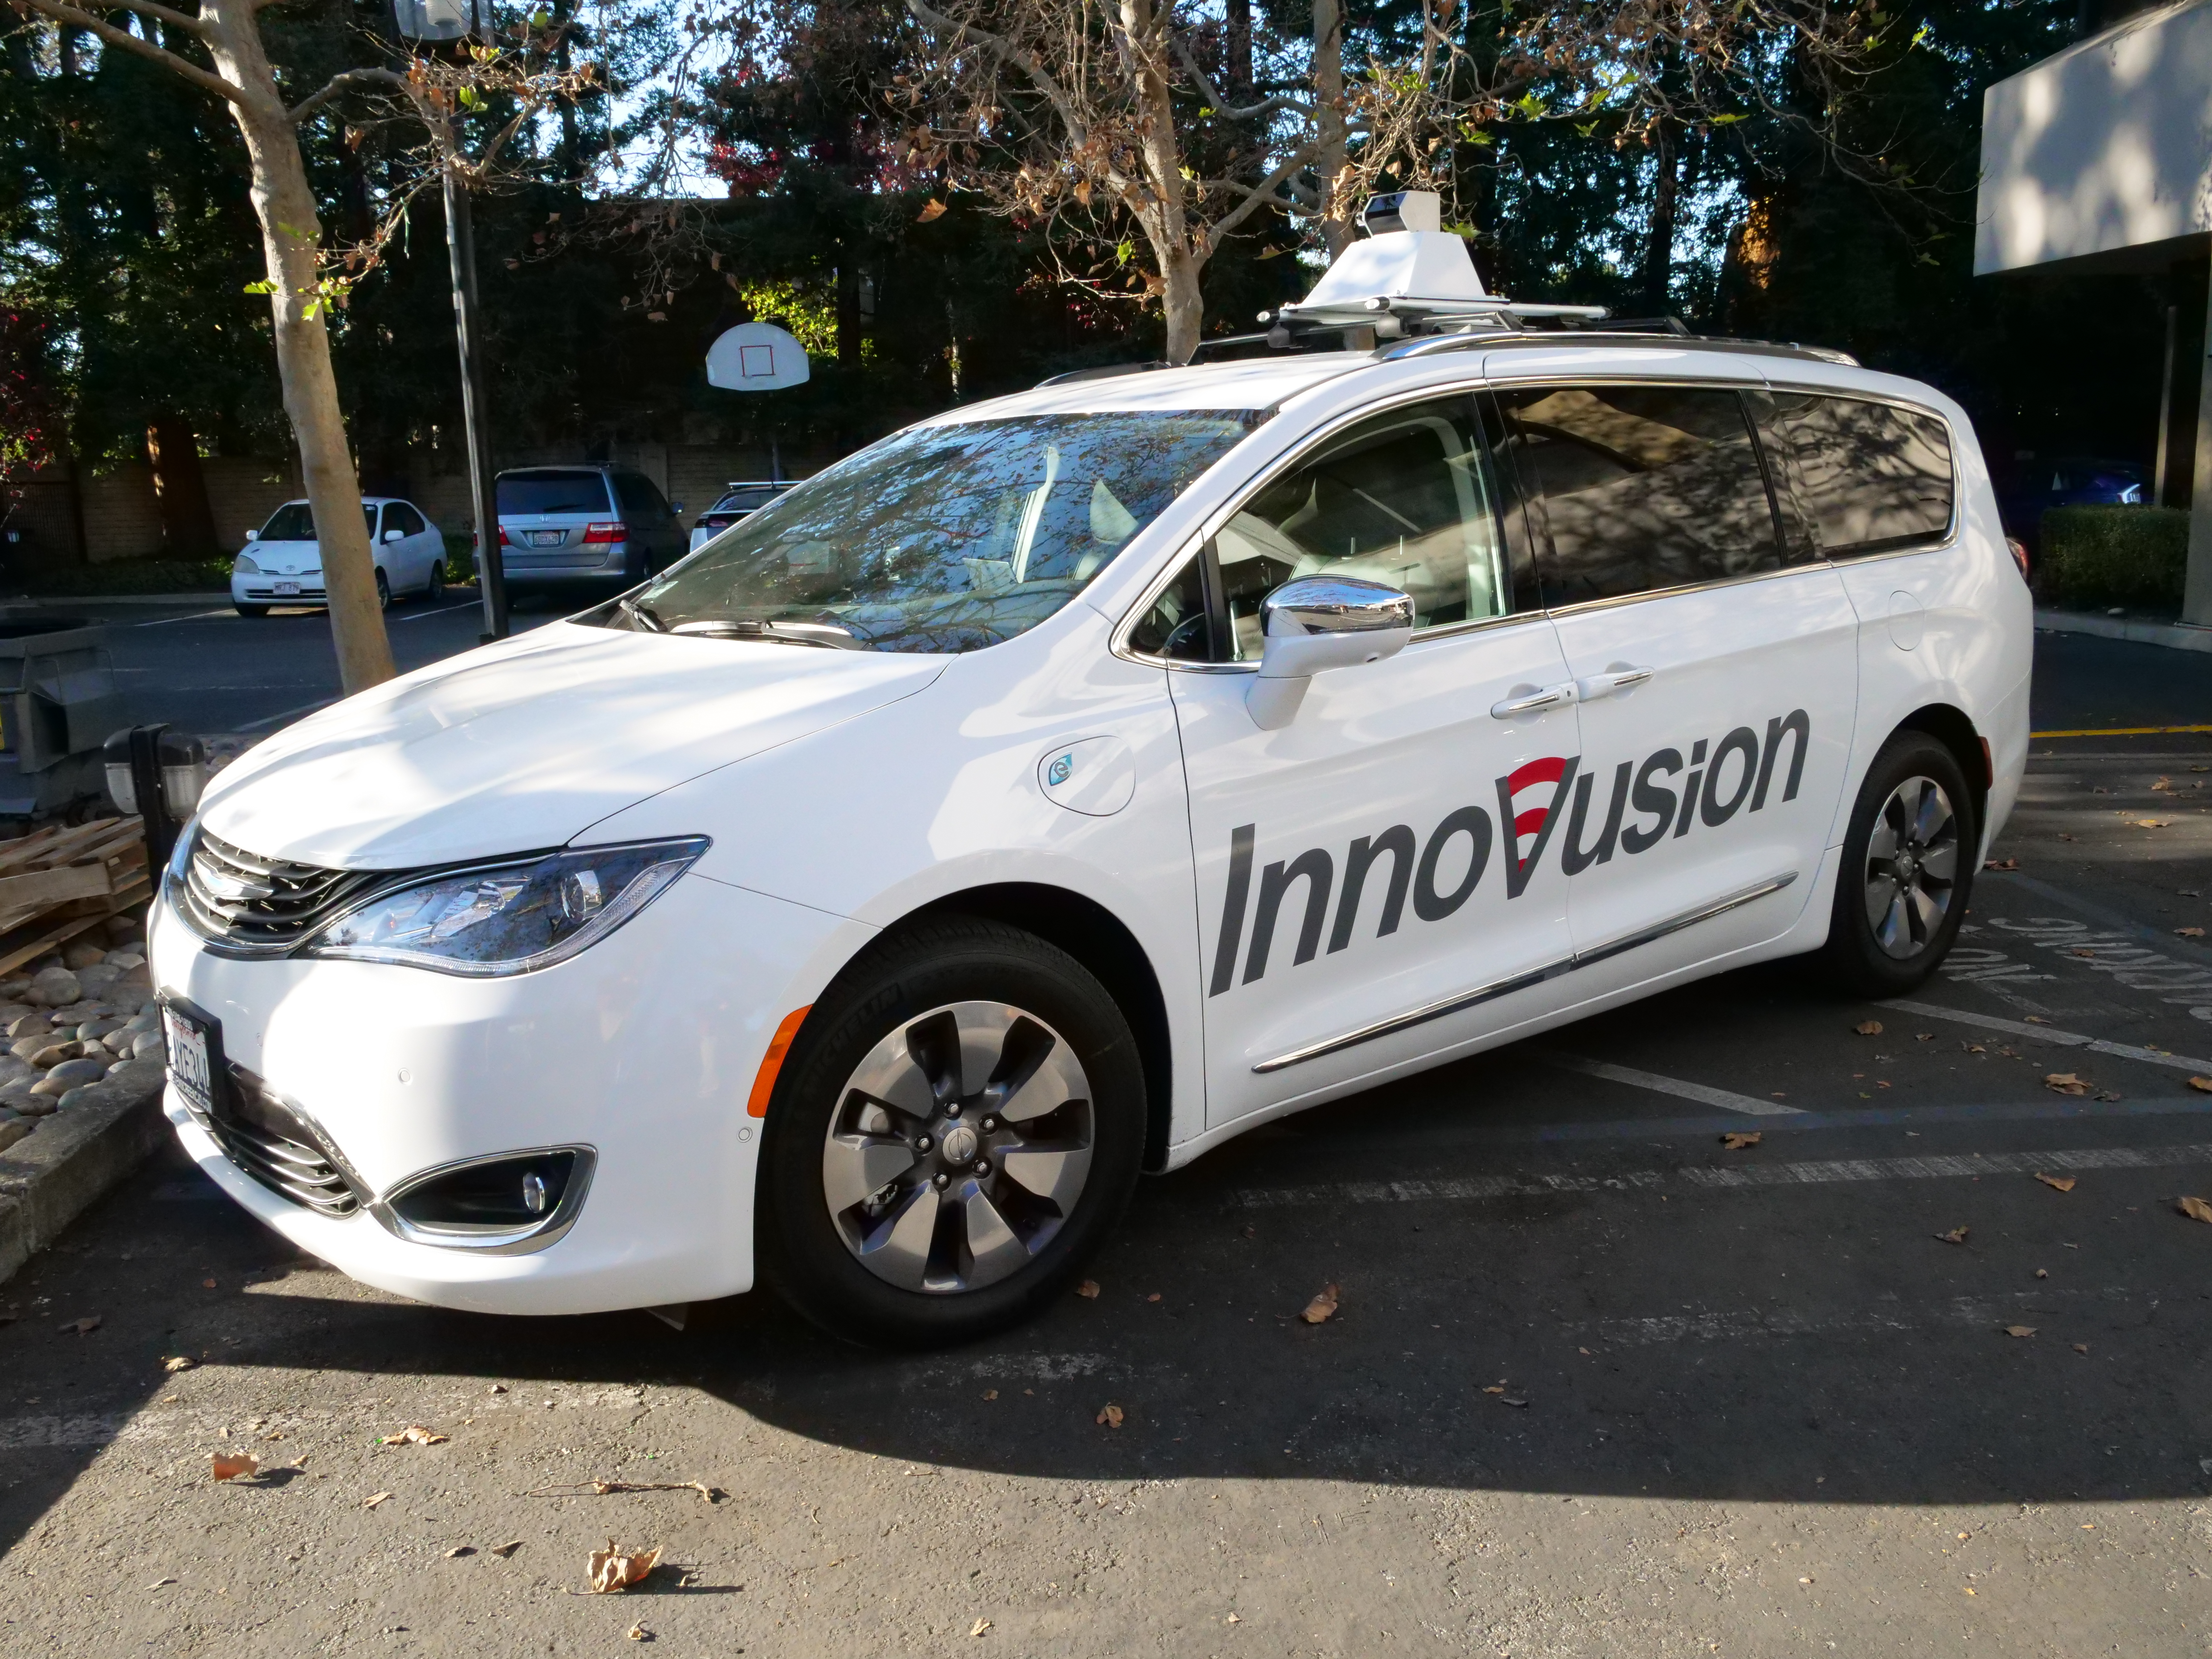 New LiDAR Startup Focuses on Accuracy, Price | Driverless Report